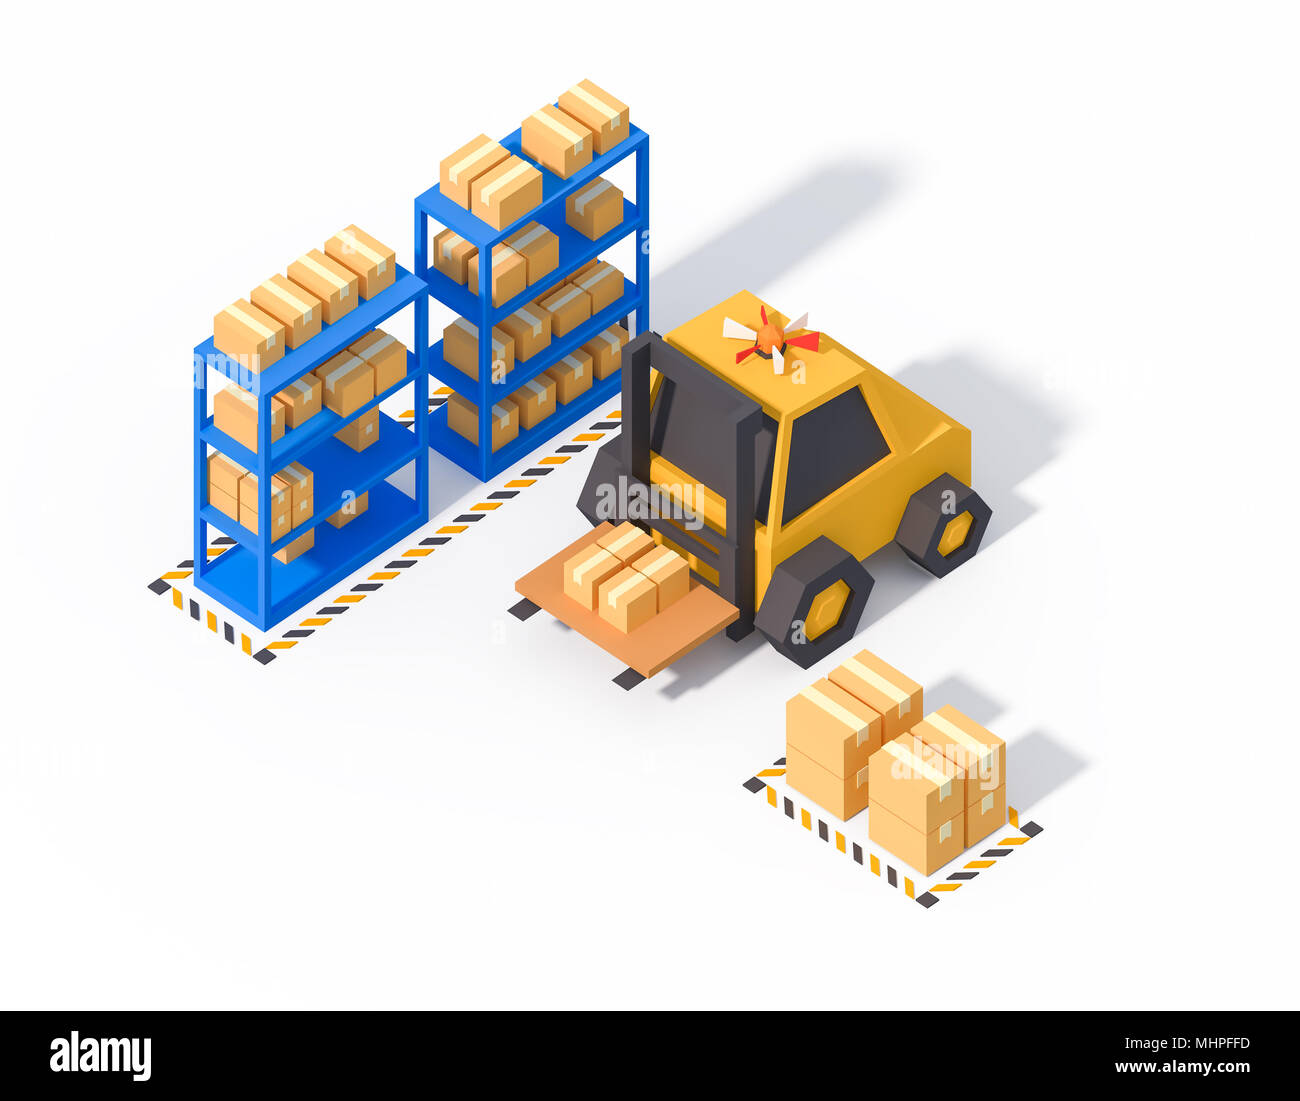 warehouse operations storage isometric low poly 3d render isolated